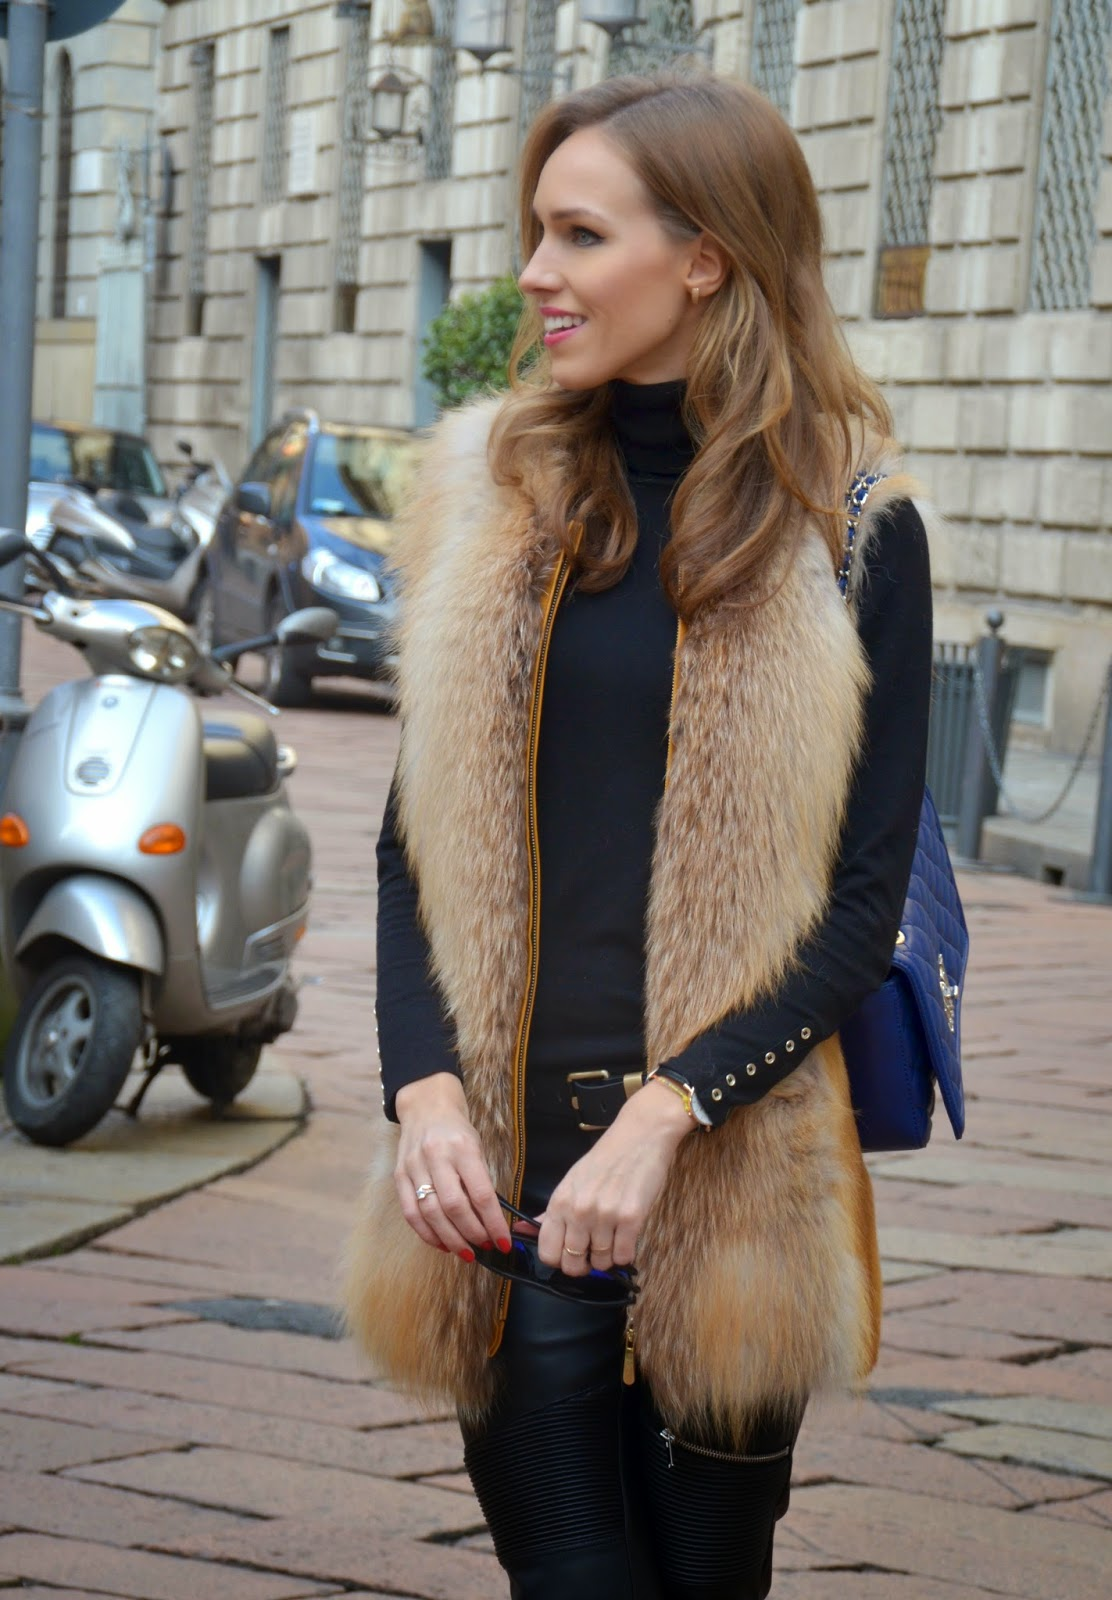 red-fox-fur-vest-zara-black-pullover-leather-pants-outfit-milan kristjaana mere